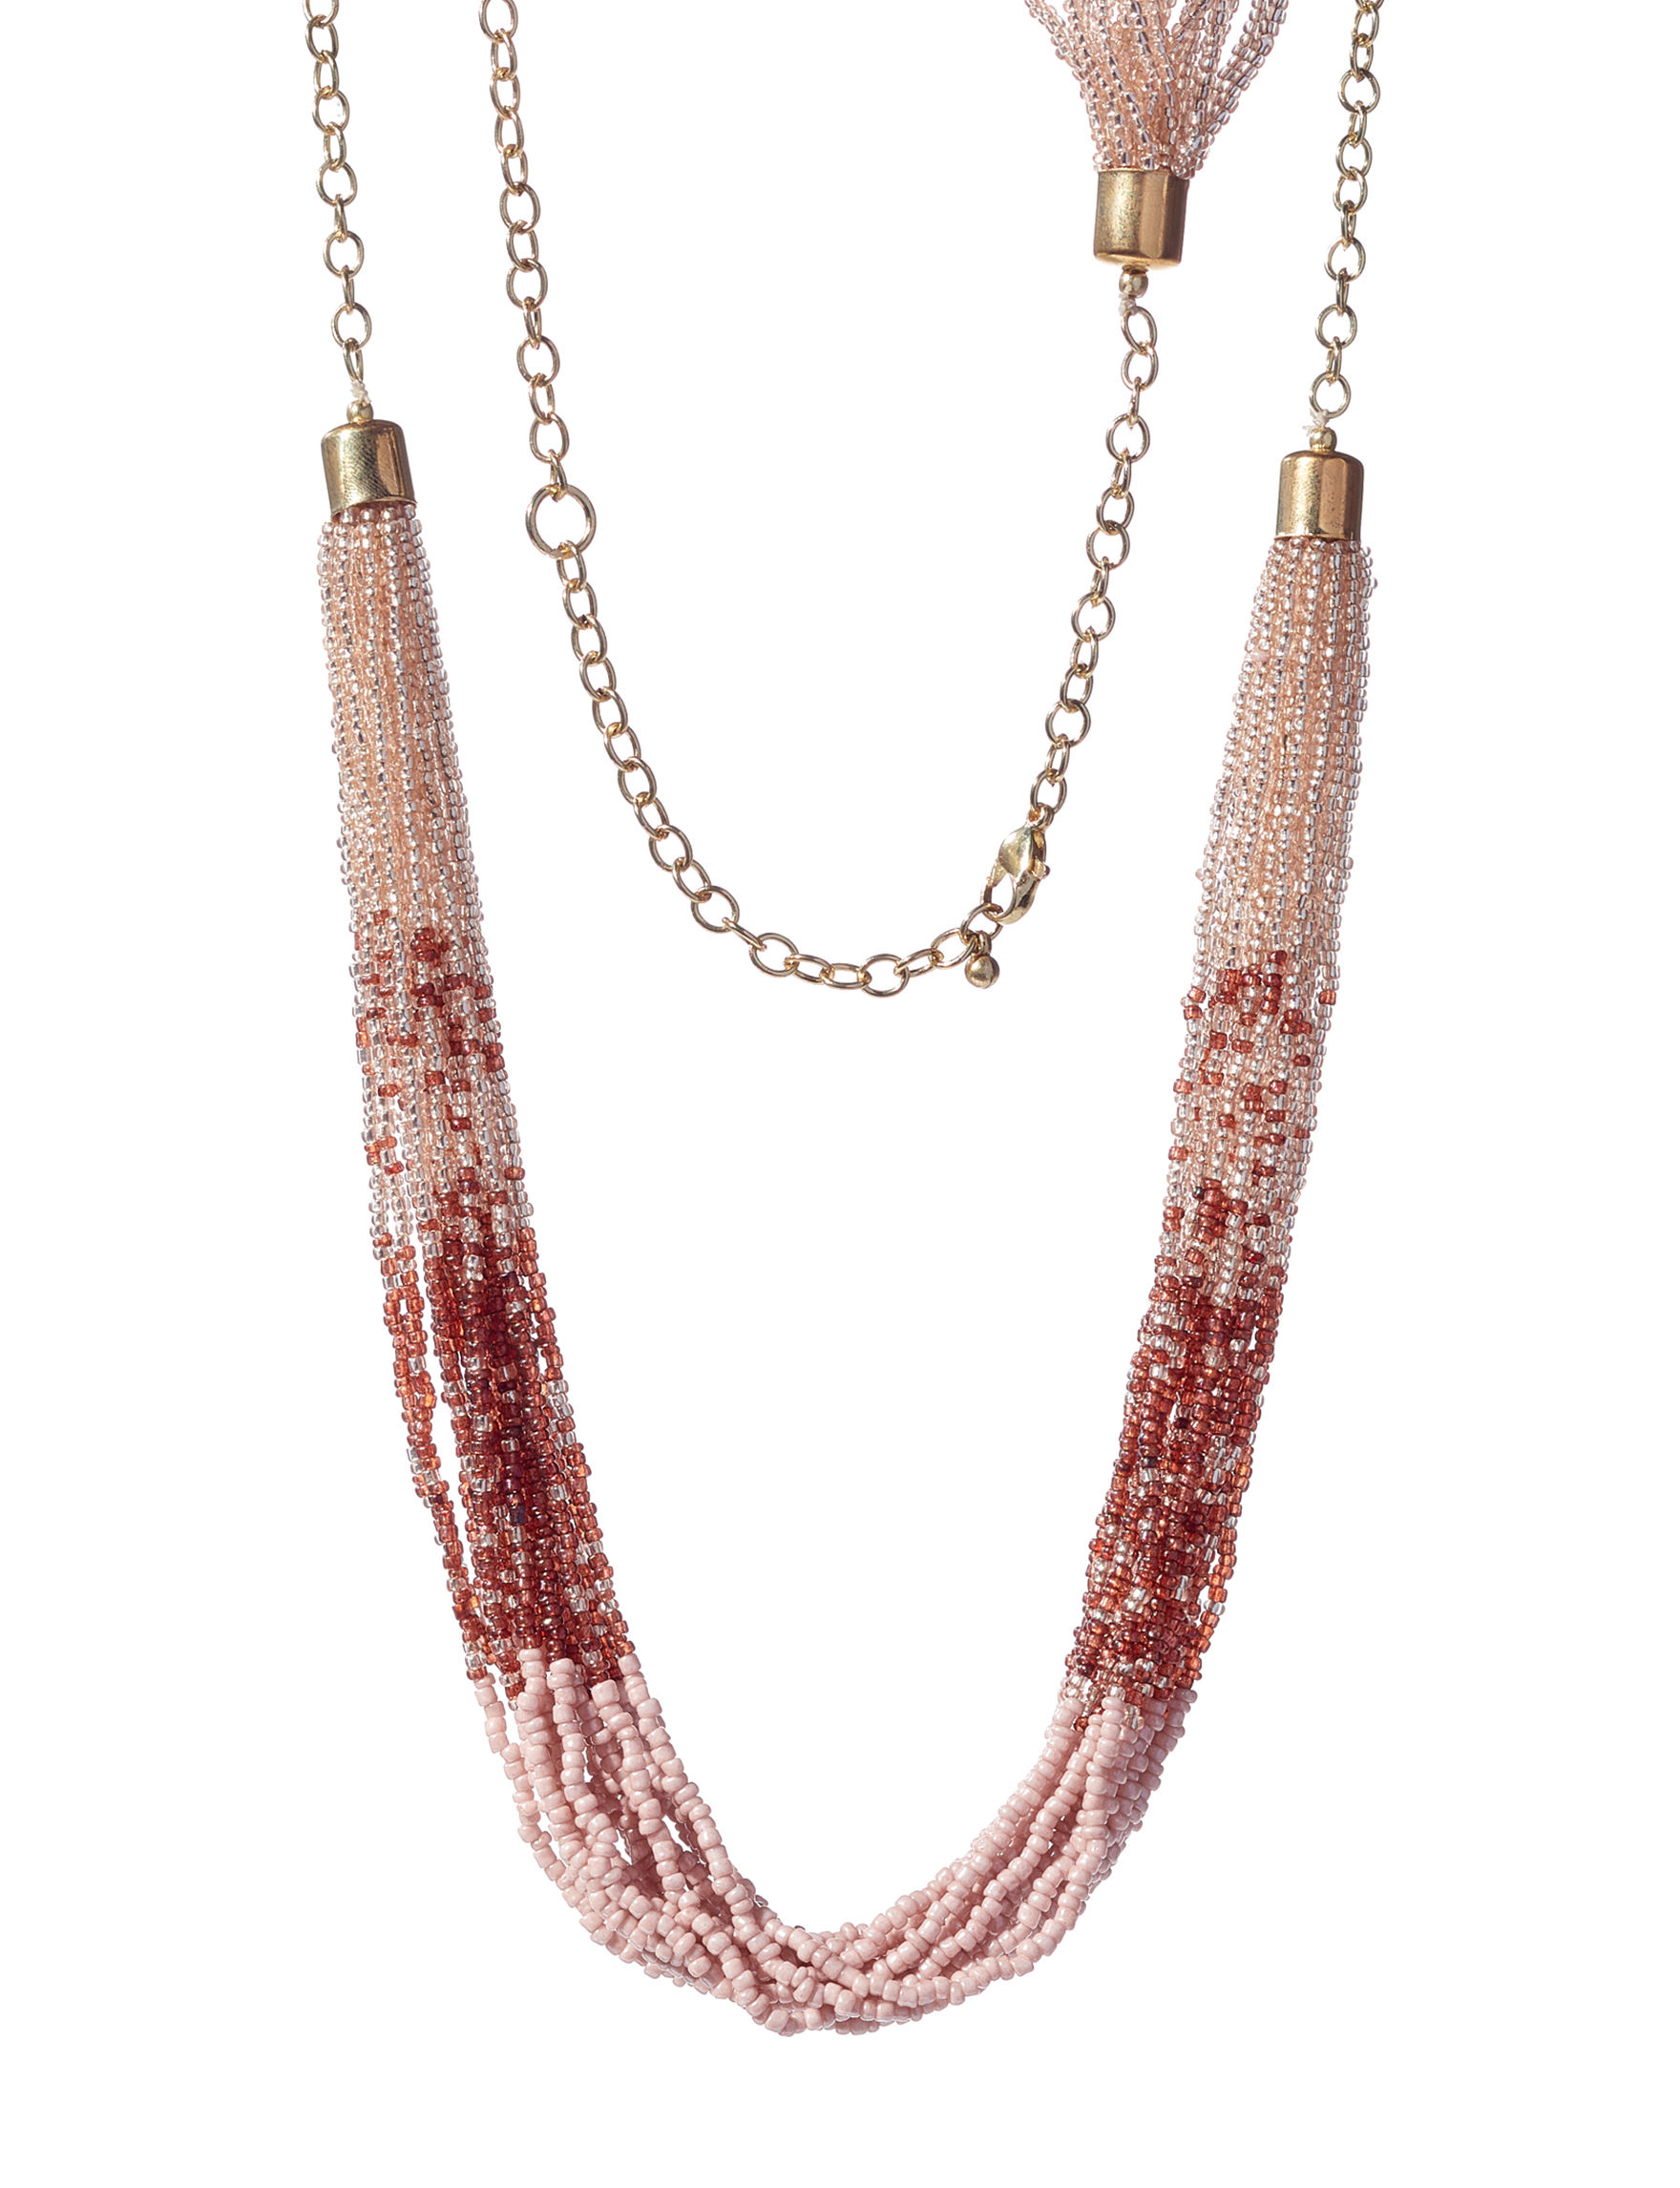 Hannah Pink / Brown Necklaces & Pendants Fashion Jewelry